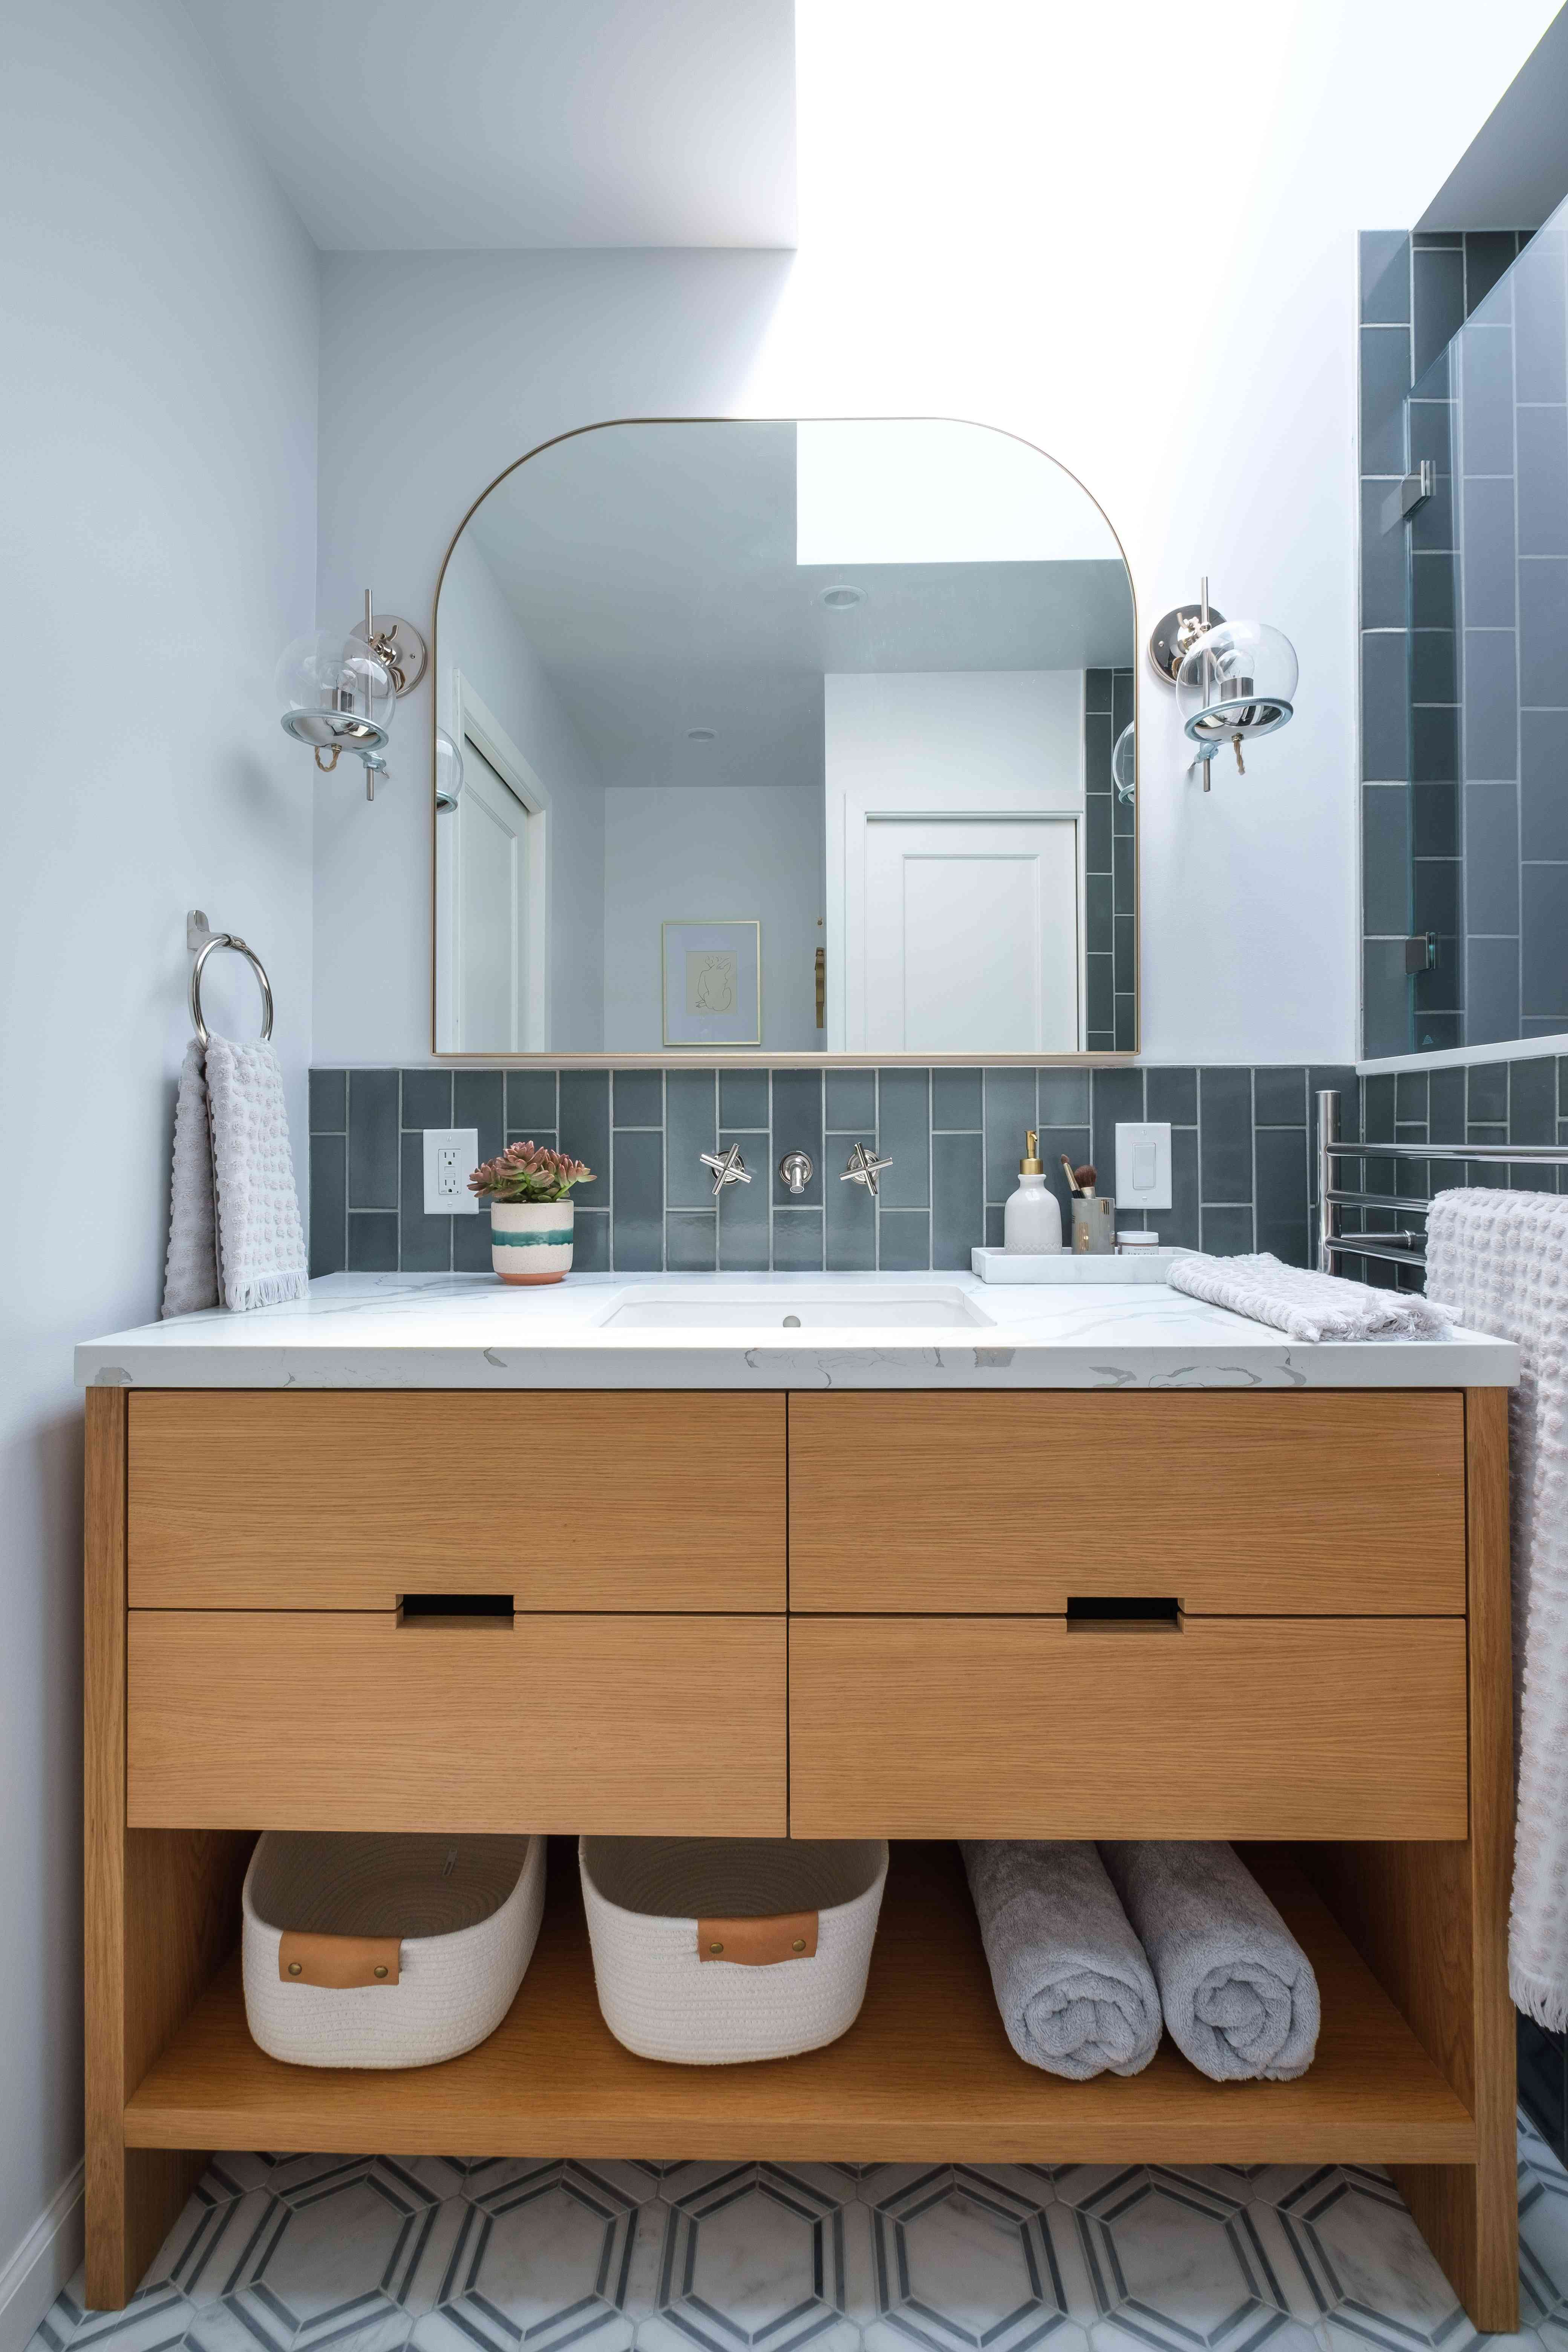 Makeover of the week- Gina Rachelle Small bathroom makeover after photo